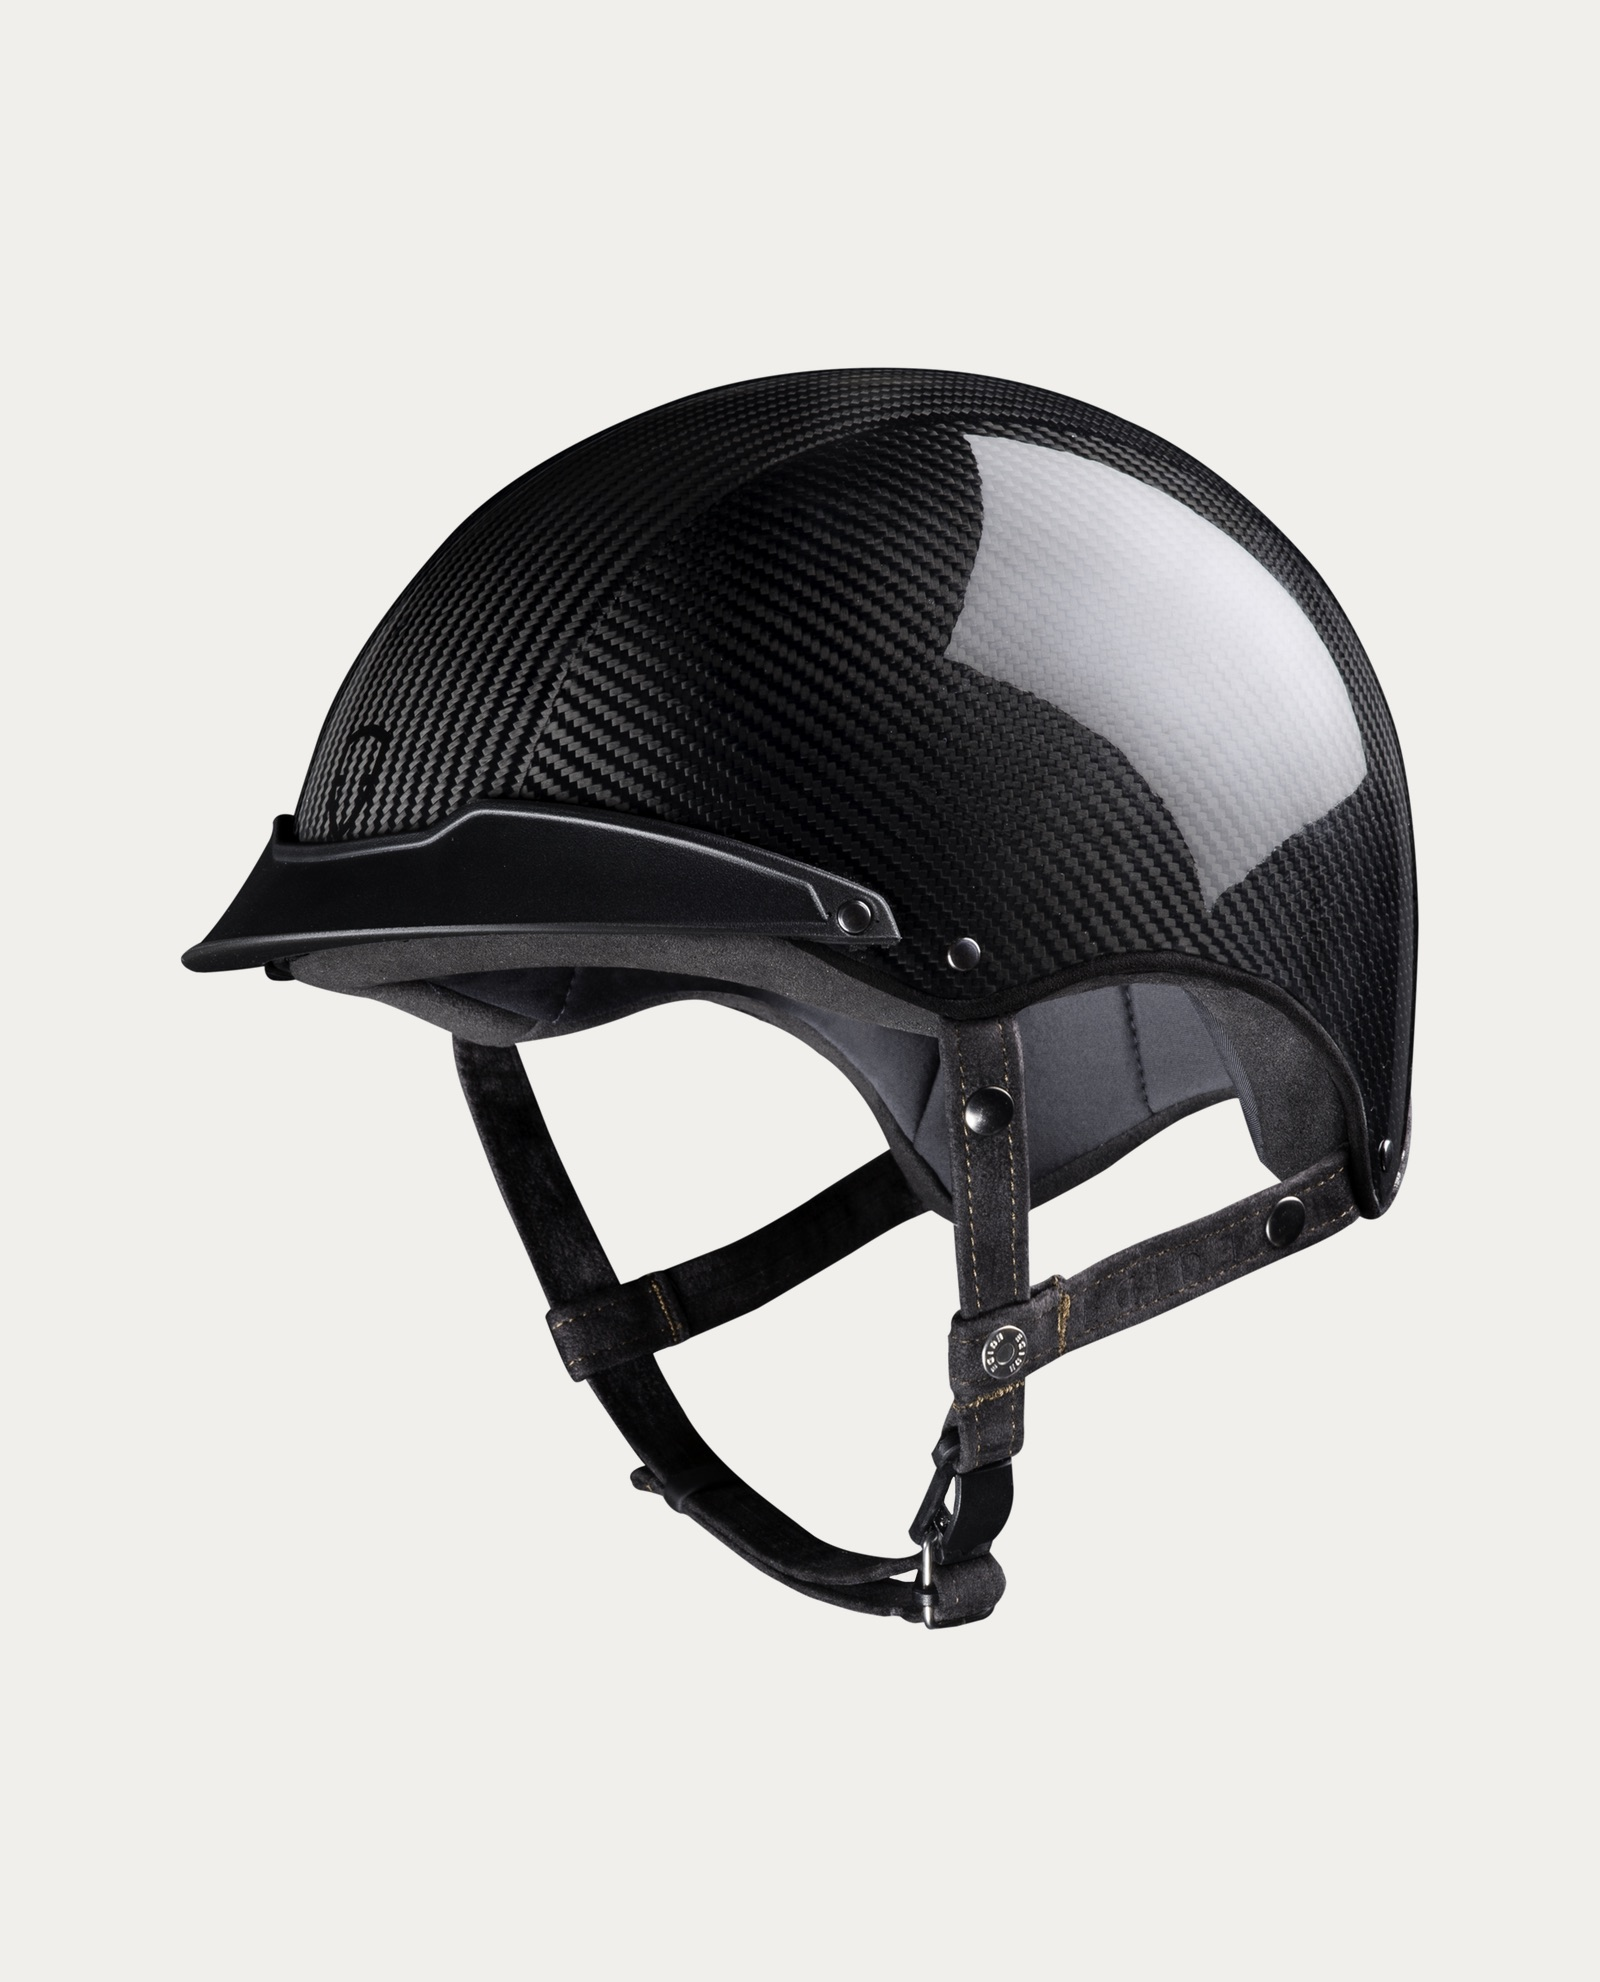 casque_velo_egide_apollo_carbone